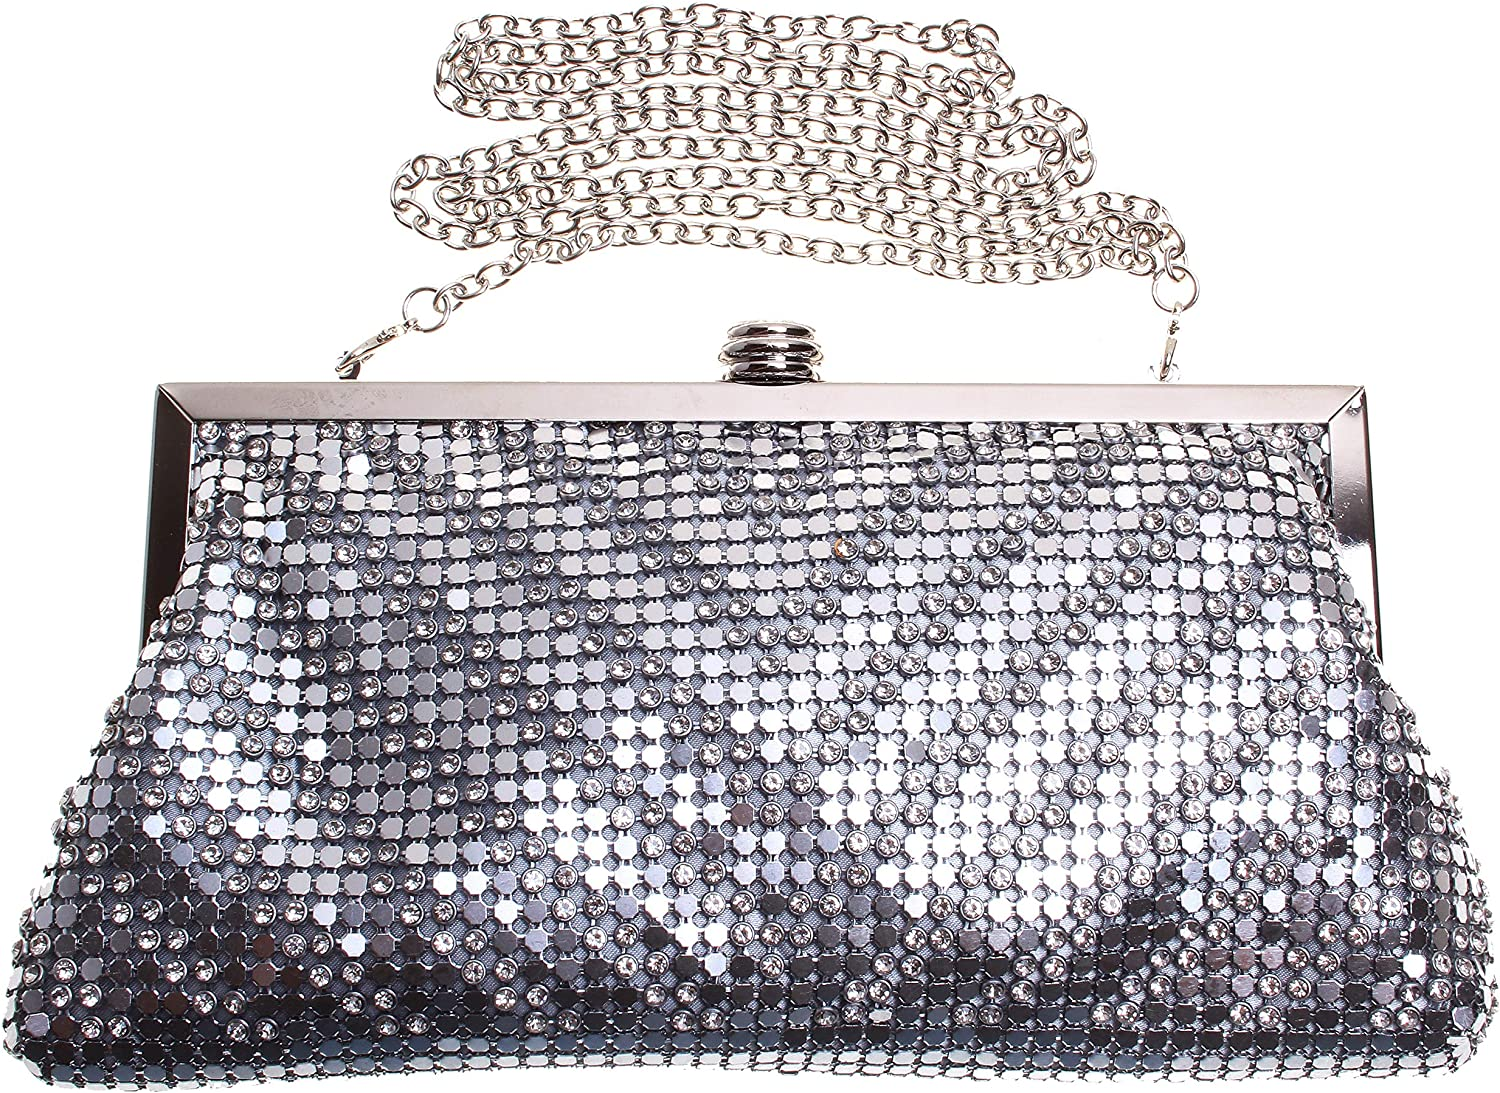 International Concepts Sequins Glitter Clutch Evening Bag;Silver (9.5 LX5 HX1 D)